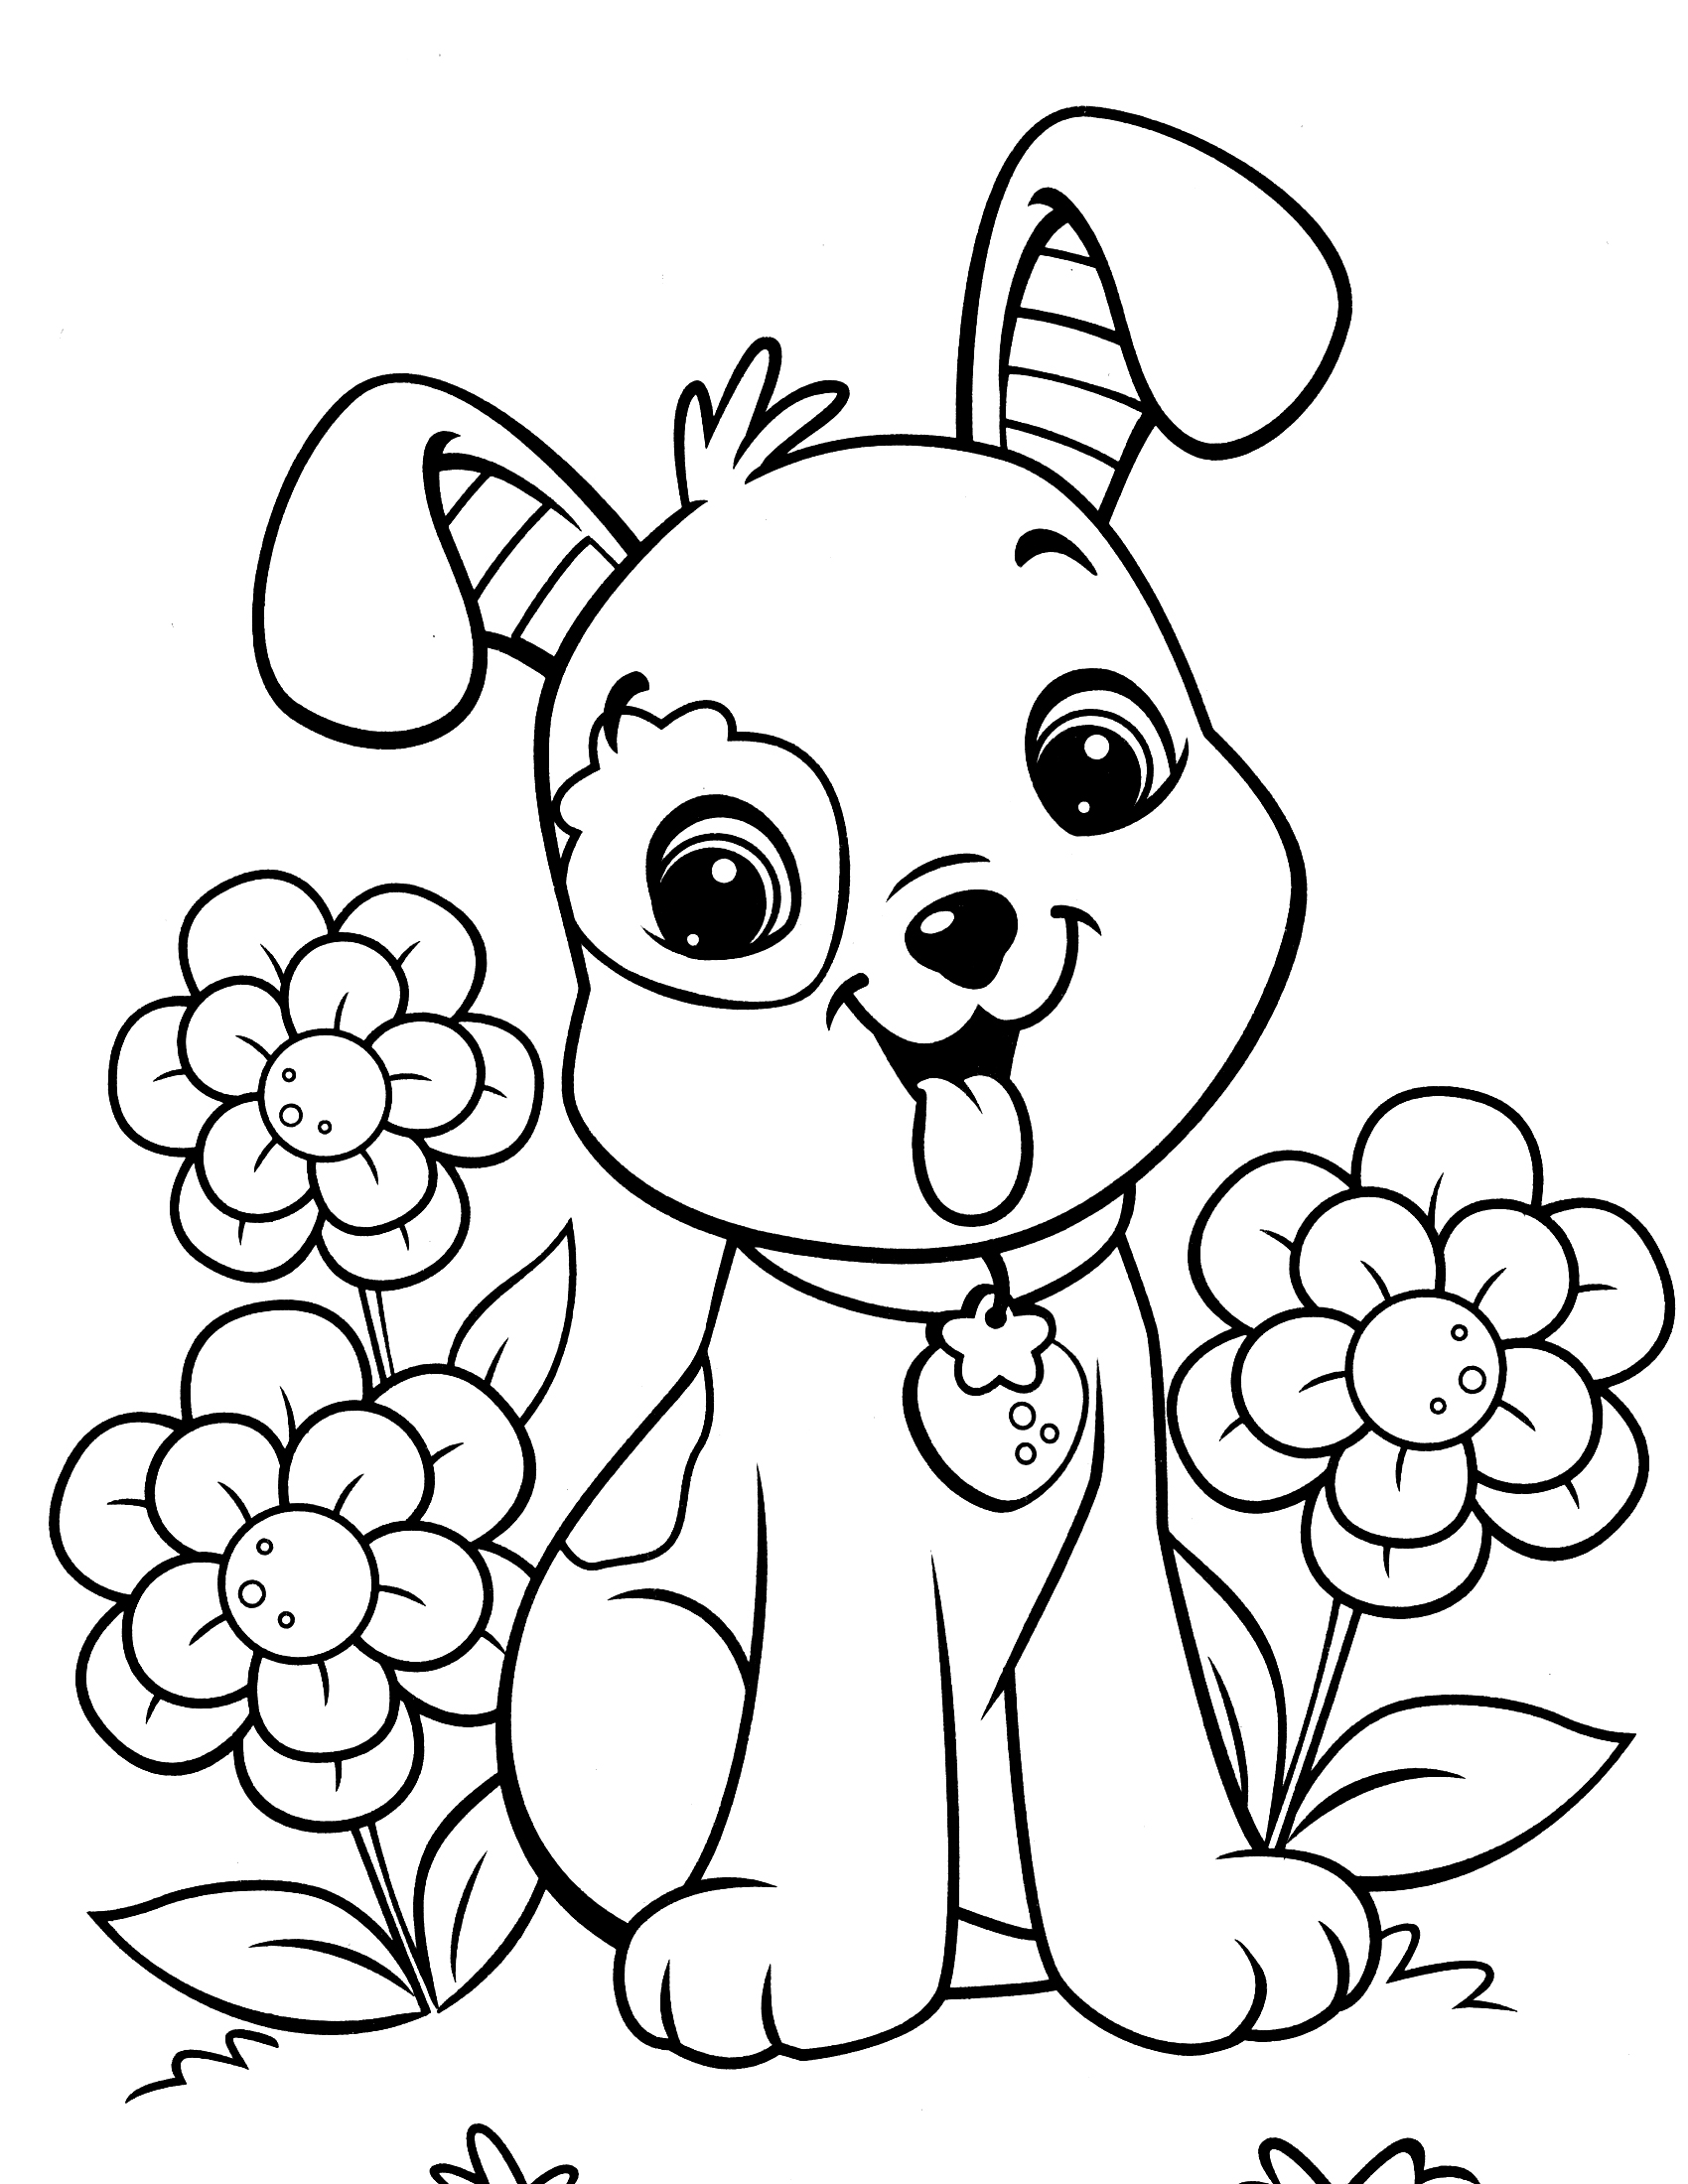 printable puppy pictures free printable puppies coloring pages for kids puppy printable pictures